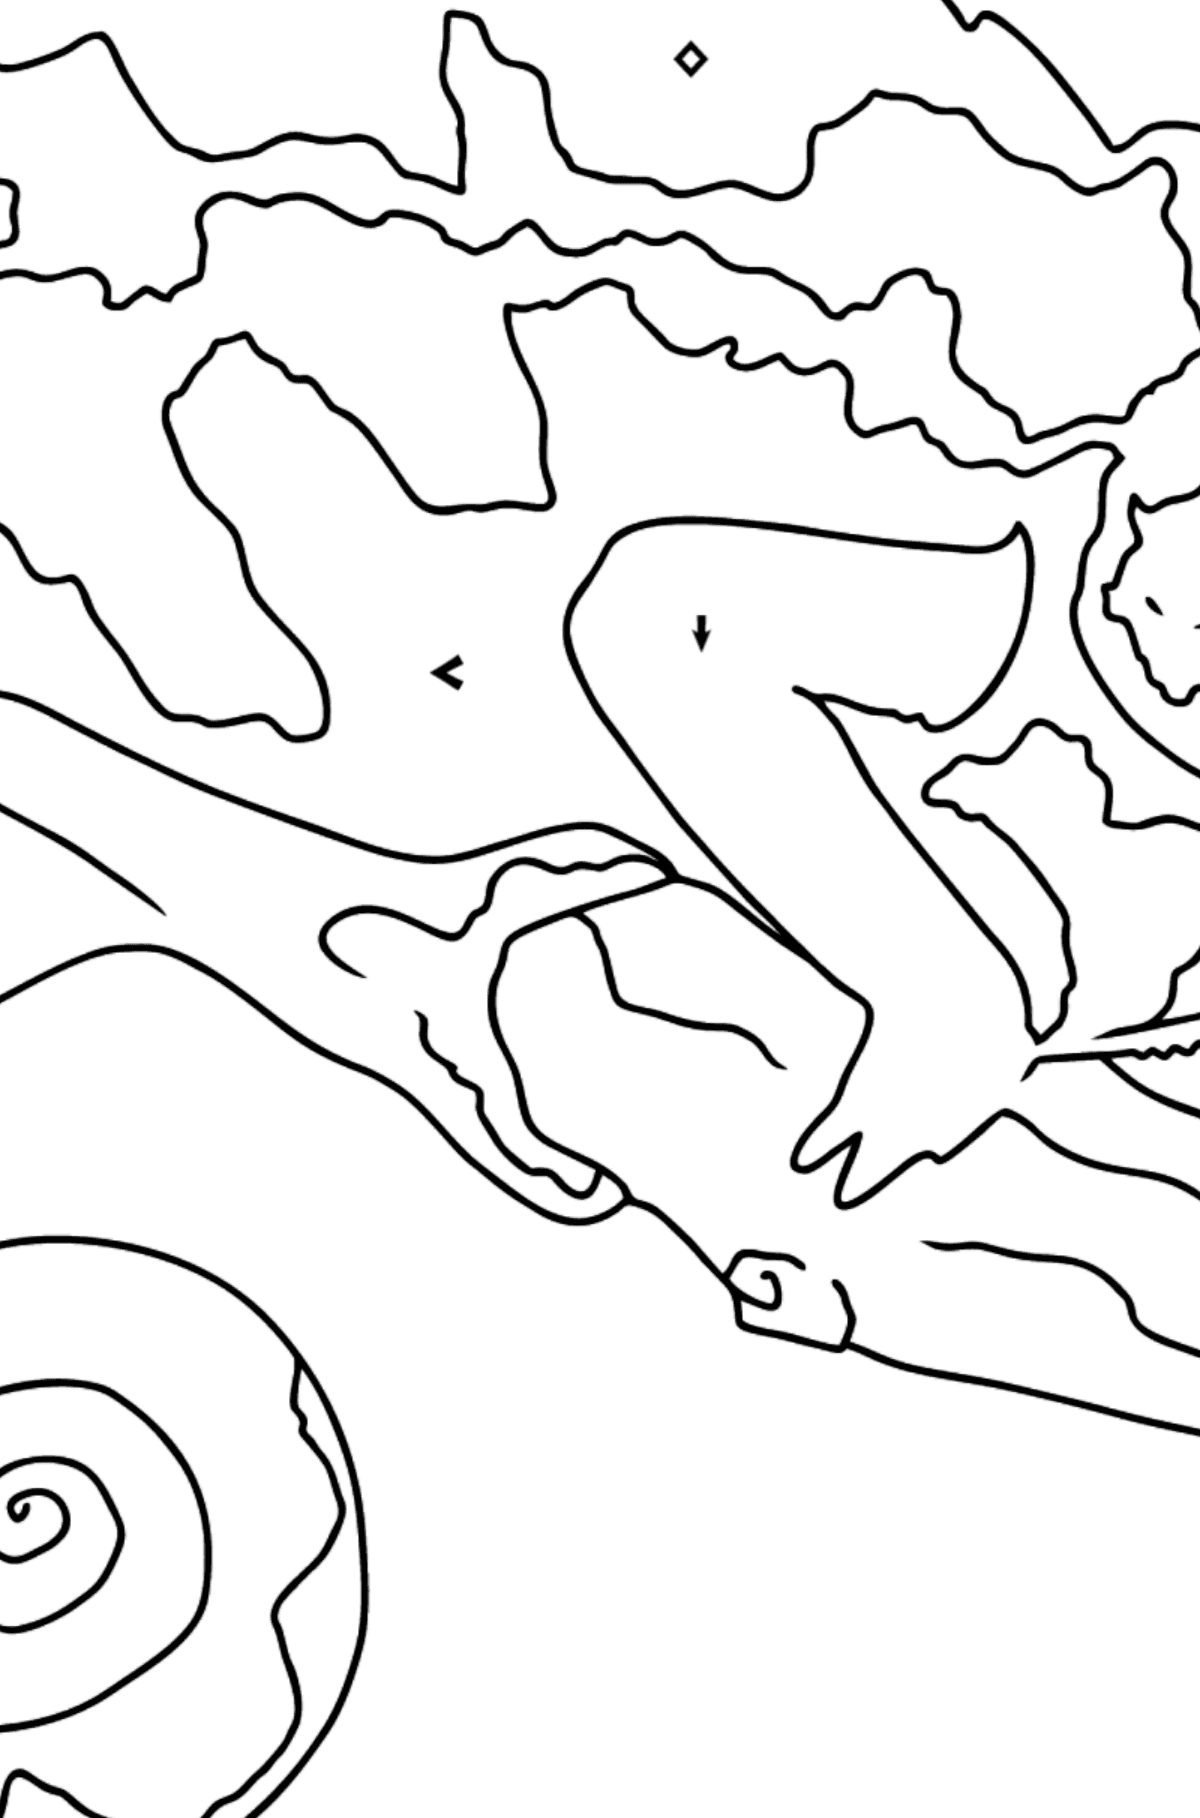 Coloring Page - A Chameleon is Having a Rest - Coloring by Symbols and Geometric Shapes for Kids